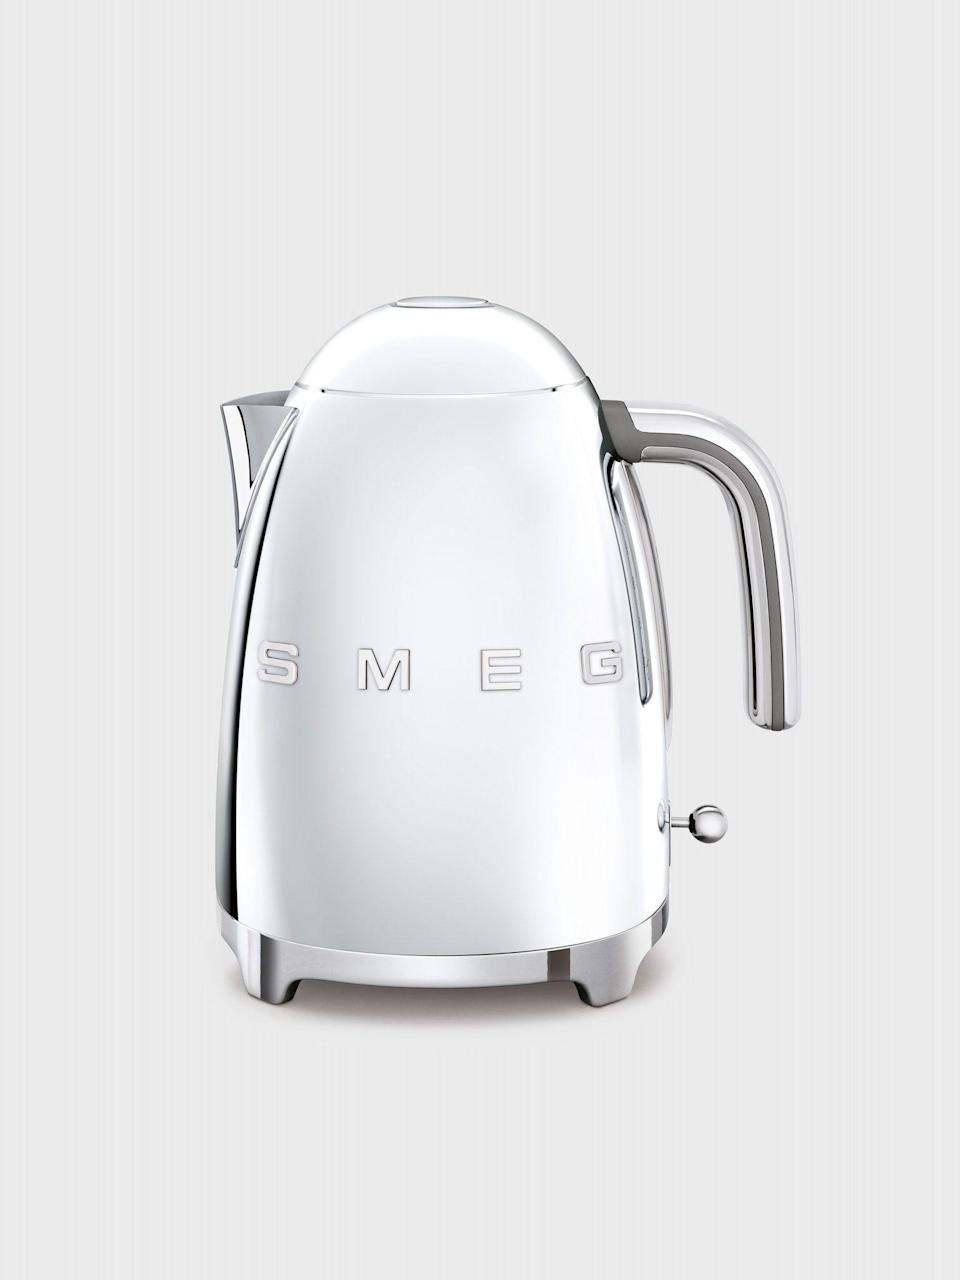 """<p><strong>Smeg</strong></p><p>verishop.com</p><p><strong>$169.95</strong></p><p><a href=""""https://go.redirectingat.com?id=74968X1596630&url=https%3A%2F%2Fwww.verishop.com%2Fsmeg%2Fkettle-teapot%2Felectric-kettle%2Fp1834464641059%3Fvariant_id%3D15375204745251&sref=https%3A%2F%2Fwww.menshealth.com%2Ftechnology-gear%2Fg34497236%2Fbest-gifts-for-brother%2F"""" rel=""""nofollow noopener"""" target=""""_blank"""" data-ylk=""""slk:BUY IT HERE"""" class=""""link rapid-noclick-resp"""">BUY IT HERE</a></p><p>This stylish retro kitchen addition will help turn his bachelor pad into a home. It doubles as a functional hot water vessel and a piece of mid-century décor.</p>"""